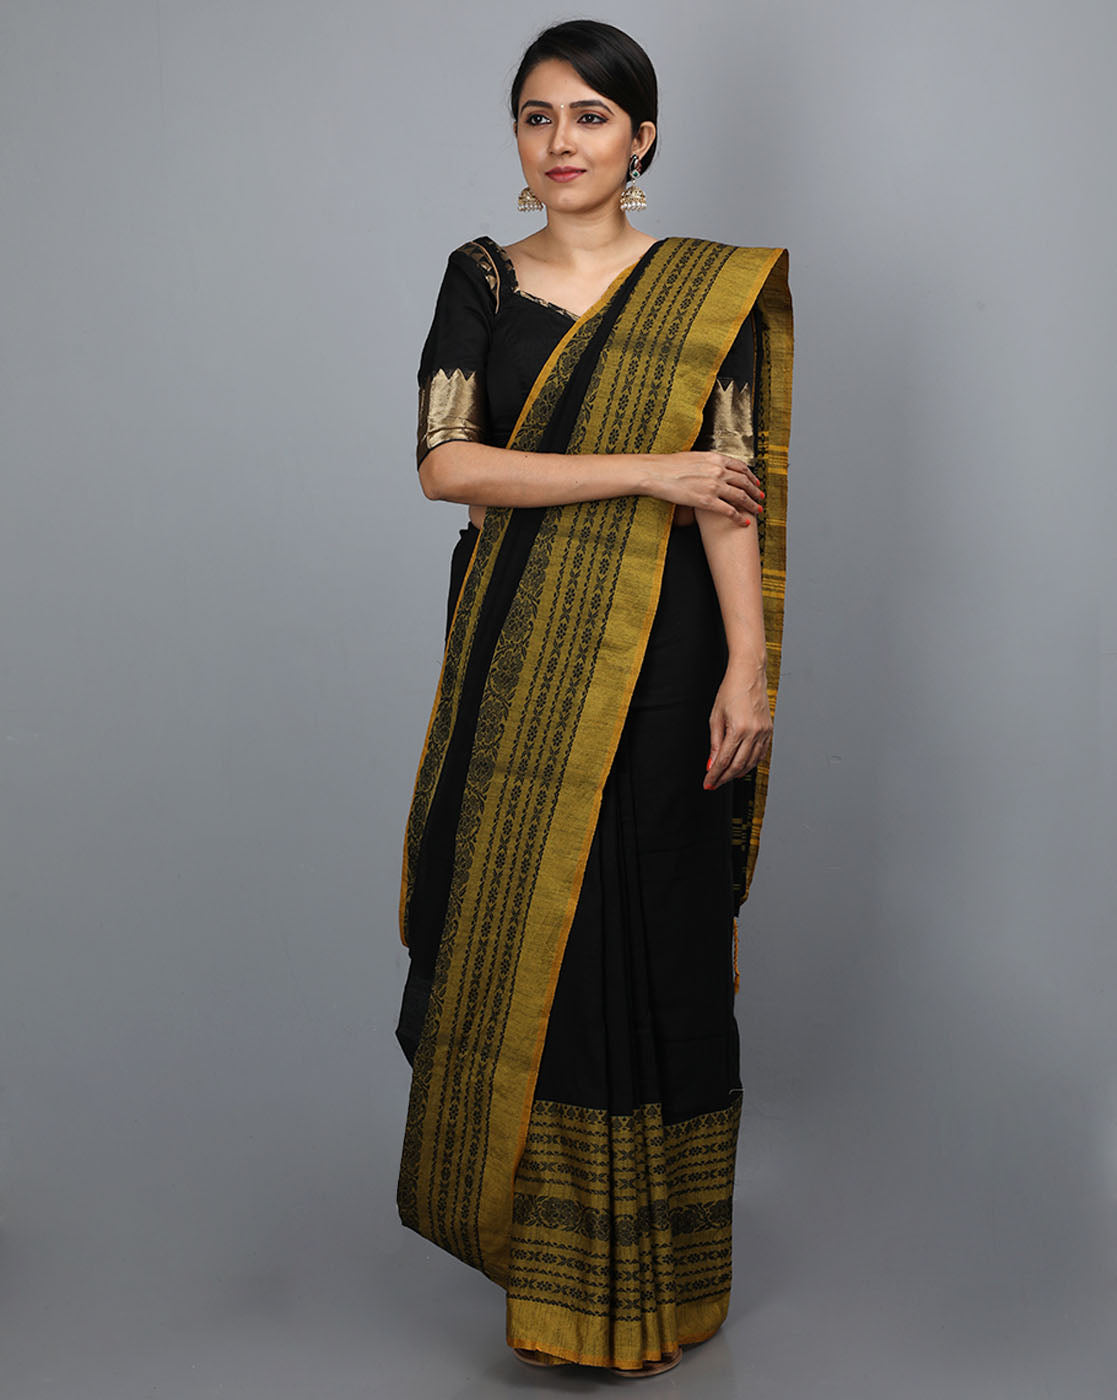 Phulia Cotton Saree with Thick and Thin Floral Border - Black/Mustard